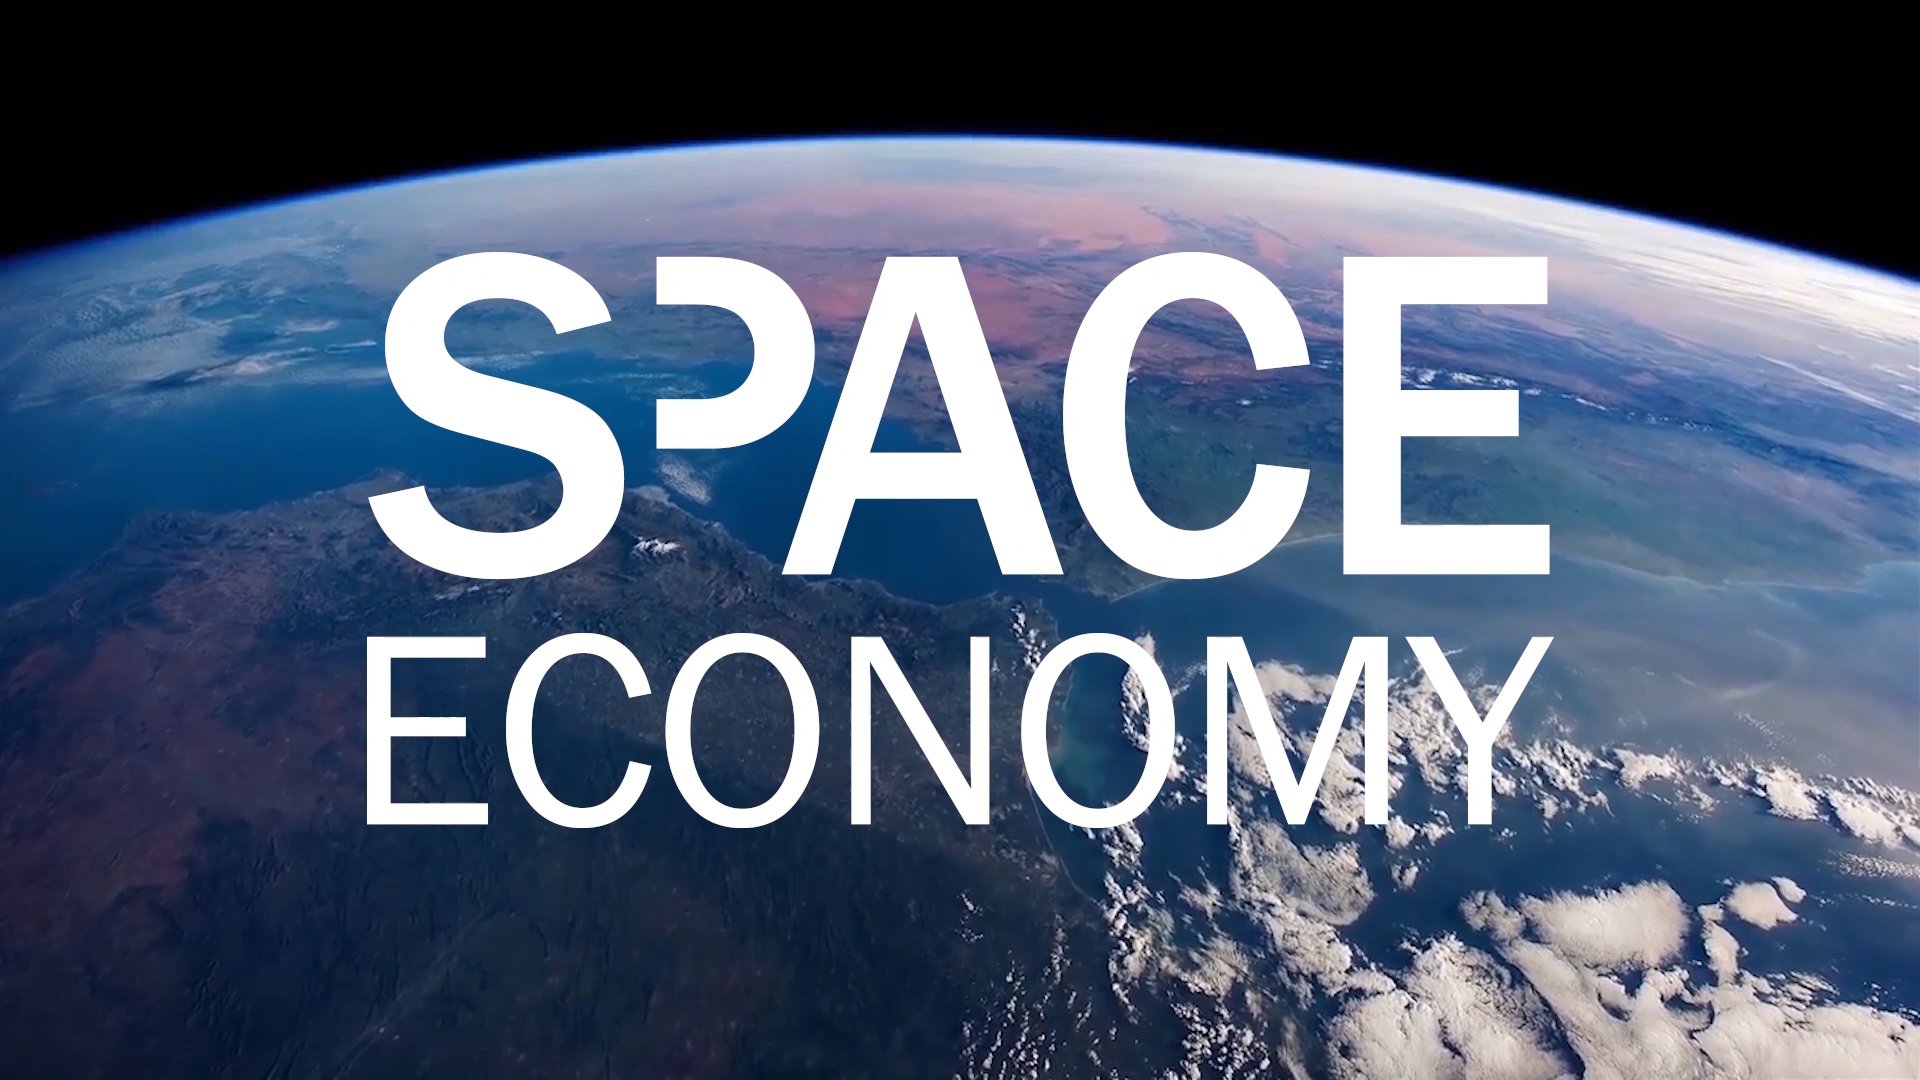 Forbes SPACE ECONOMY – Puntata 4